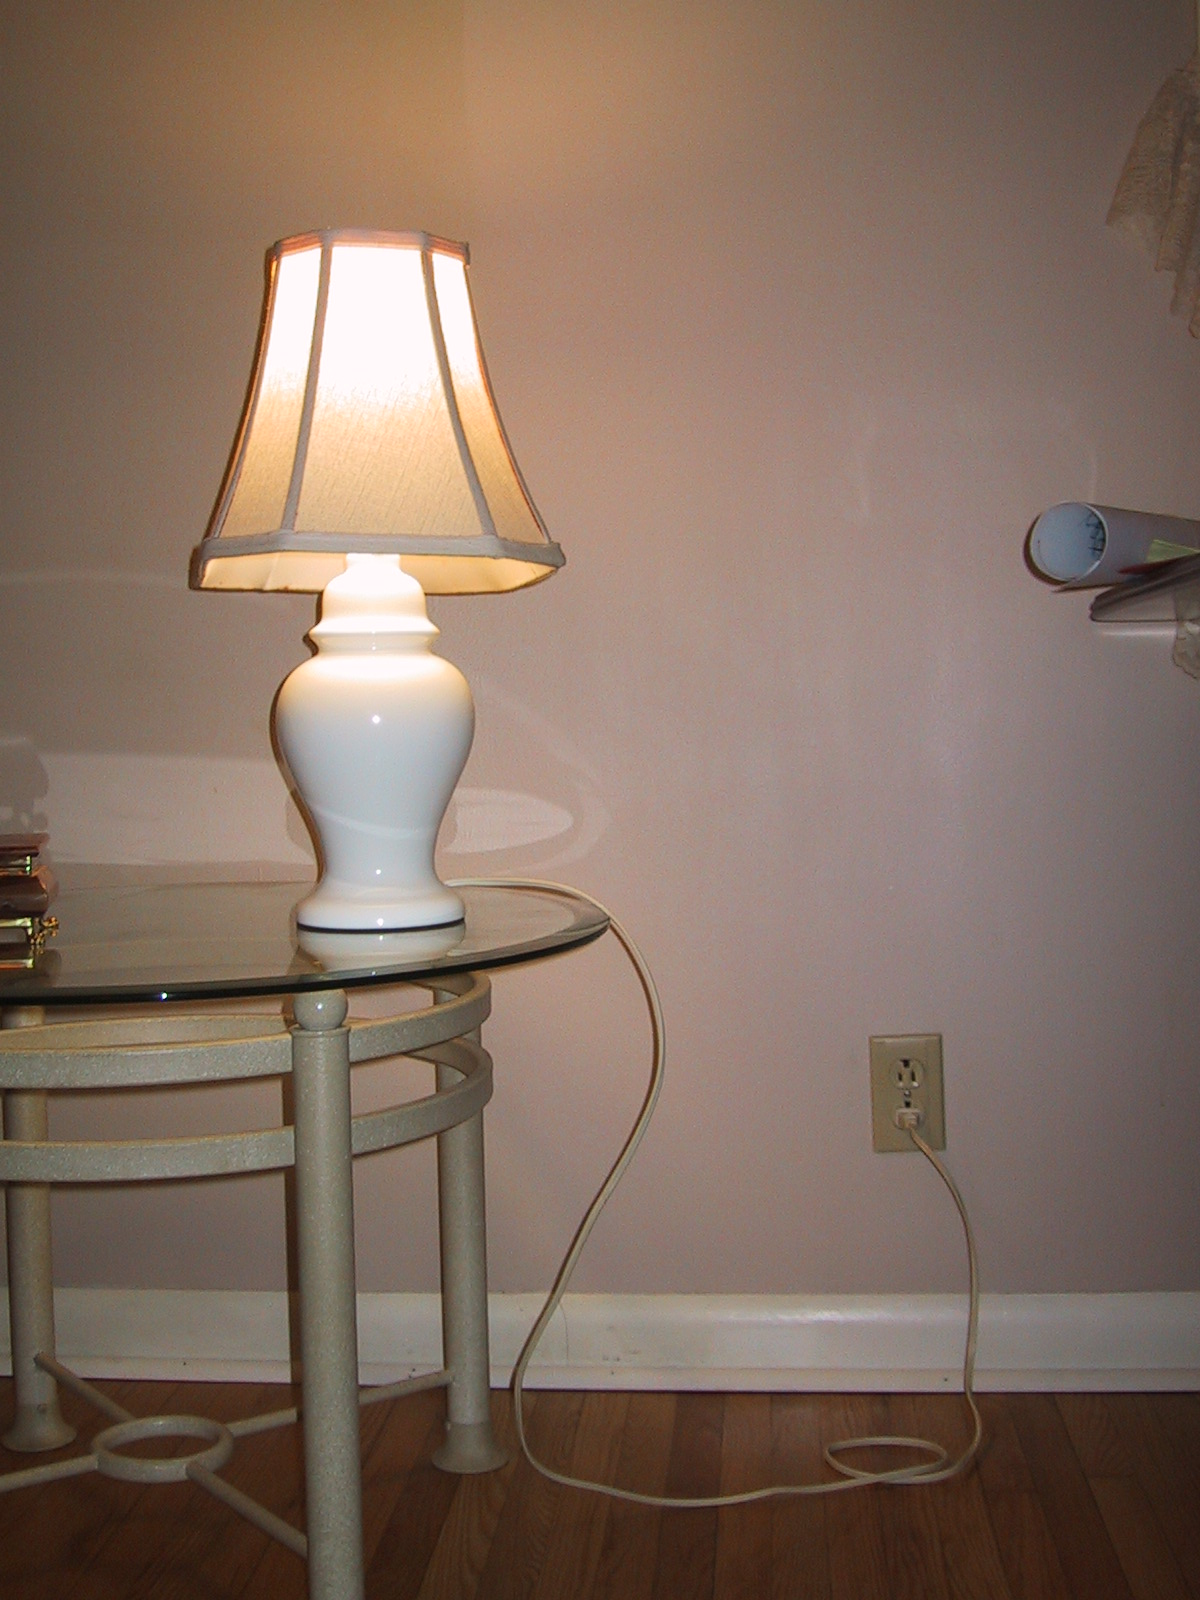 Electric lamp photo